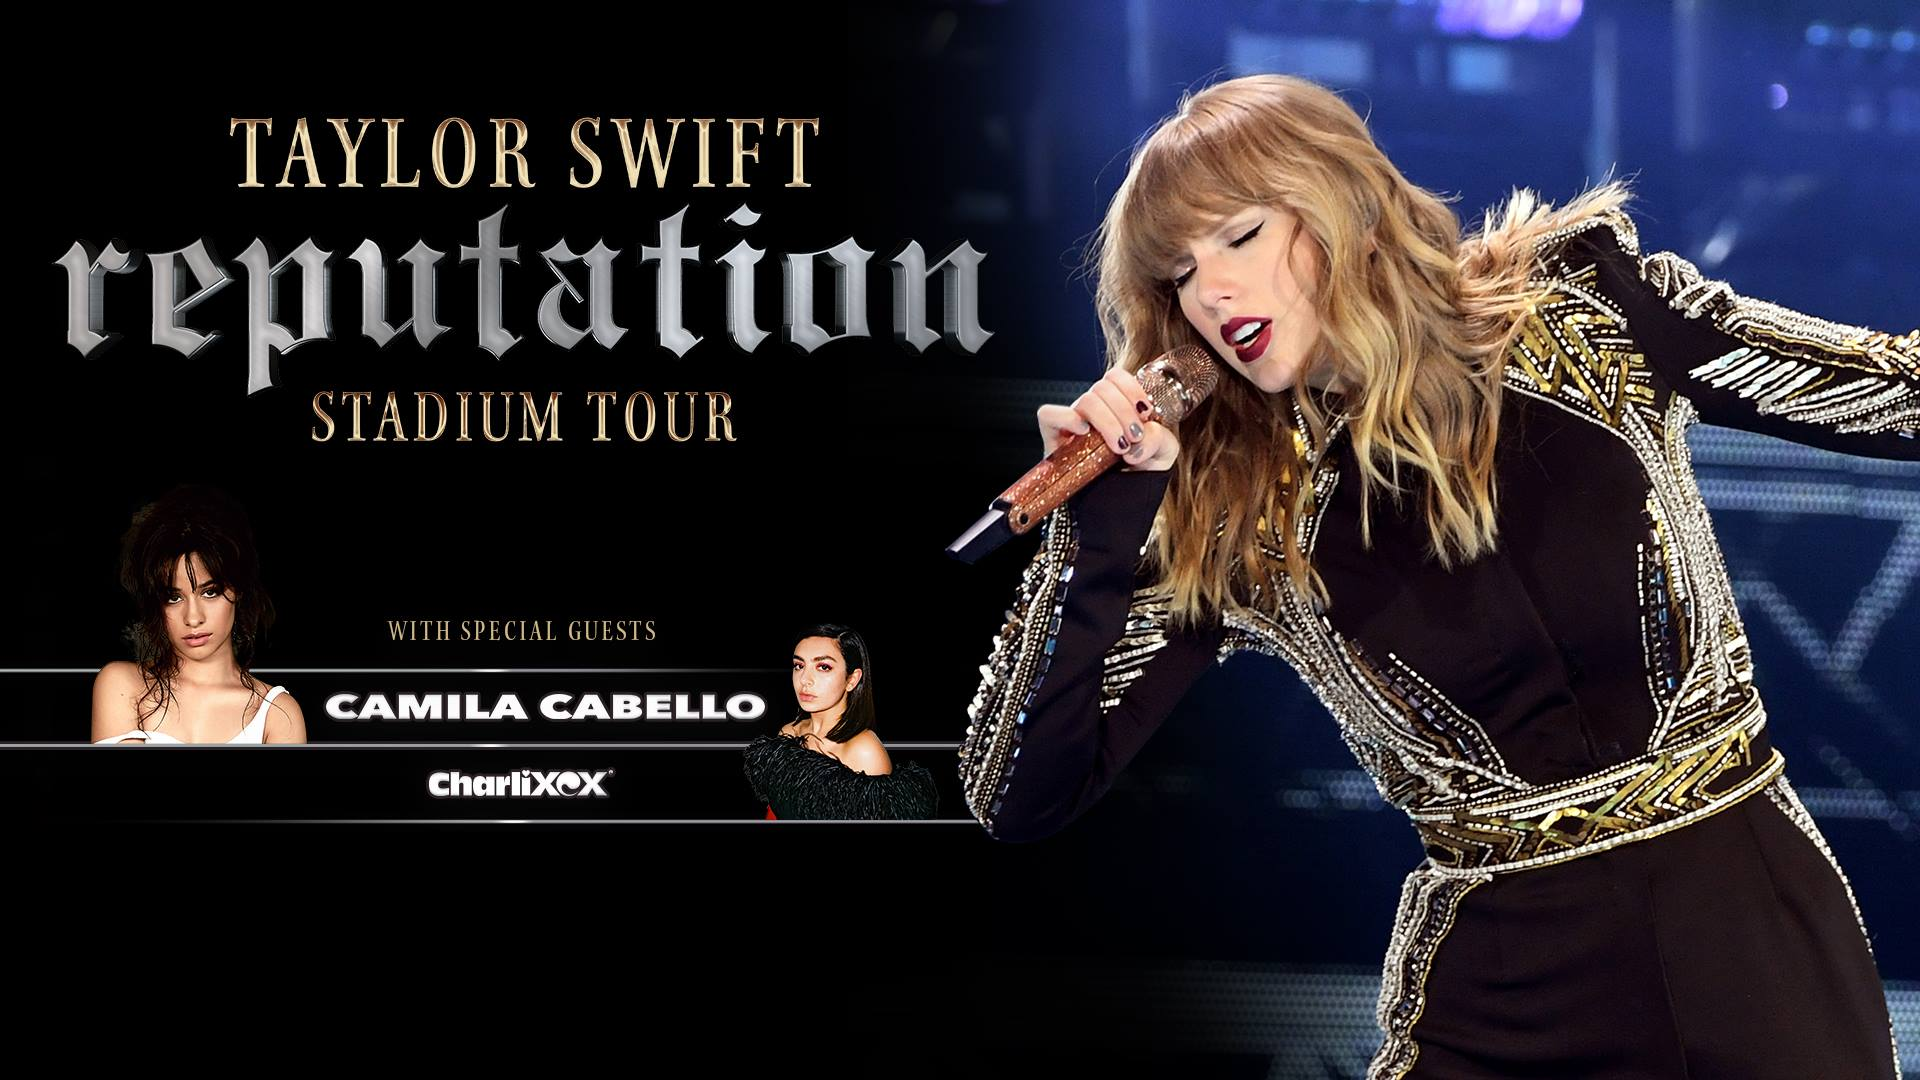 Taylor Swift Reputation Stadium Tour.jpg